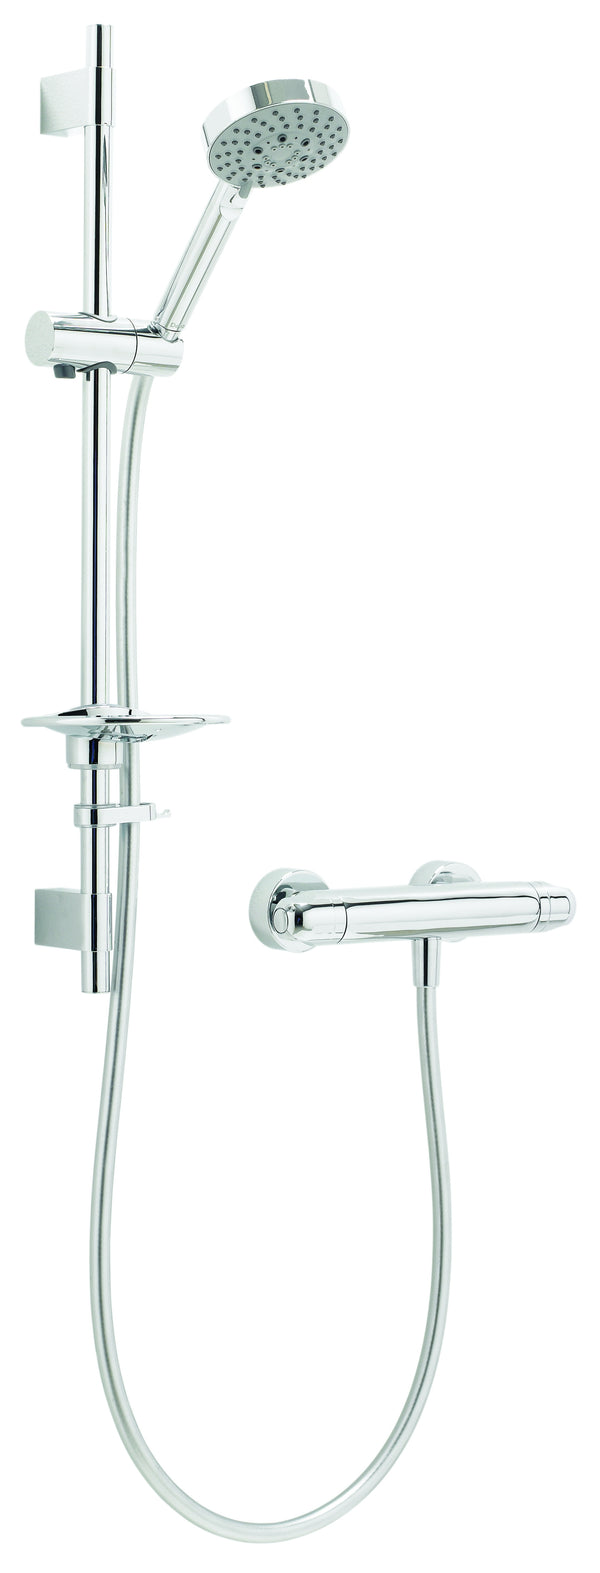 Response Bar Shower With Multi Mode Kit